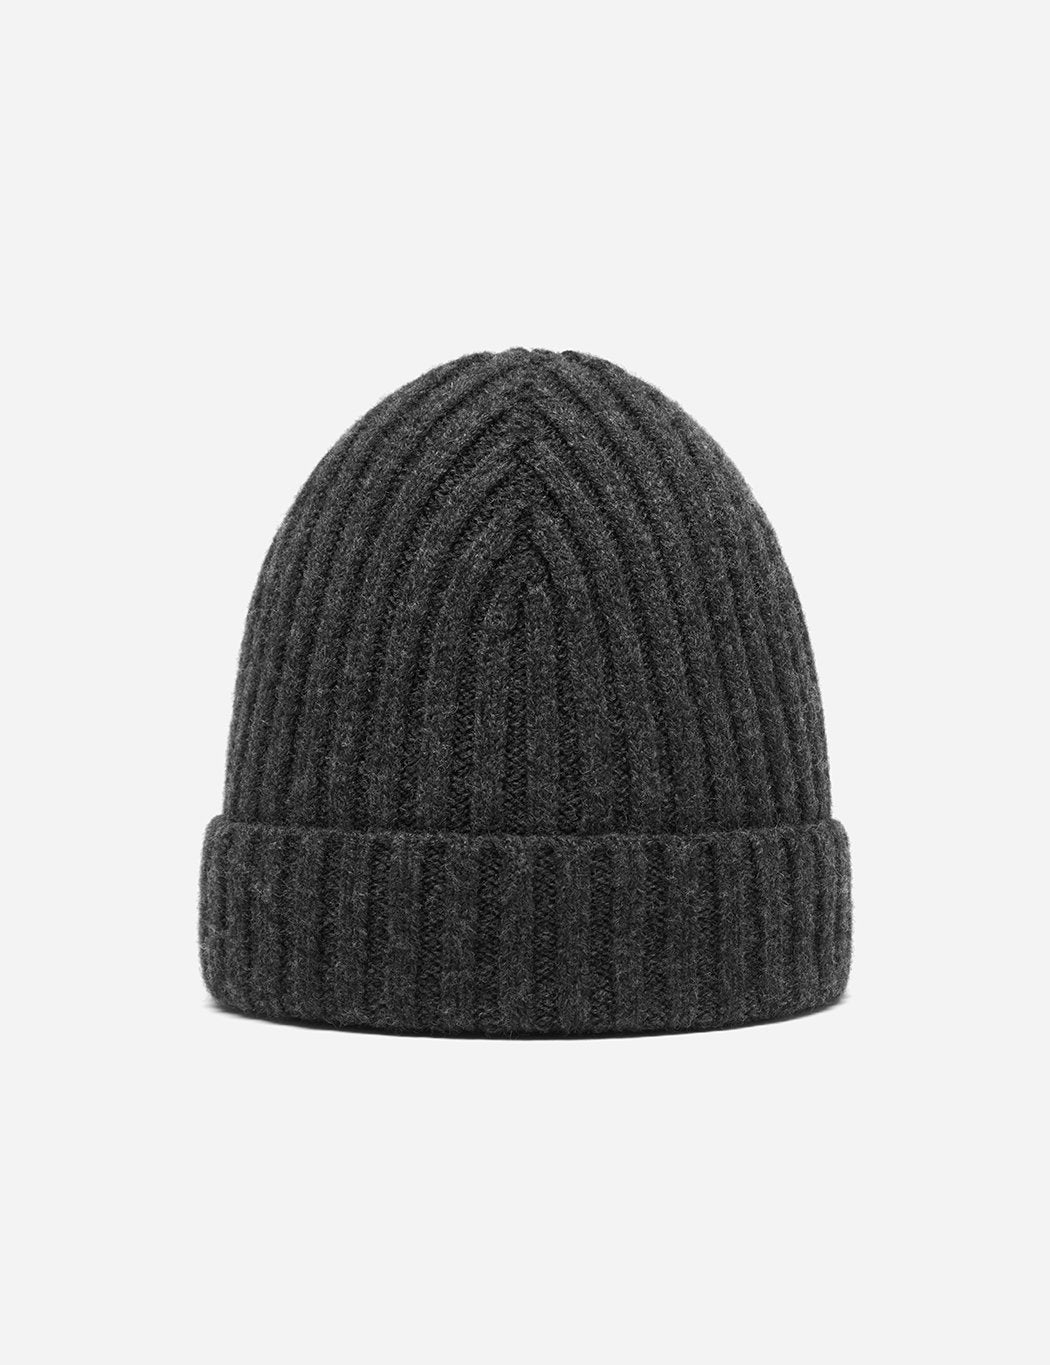 Bhode Rib Beanie Hat (Lambswool) - Charcoal Grey | URBAN EXCESS,